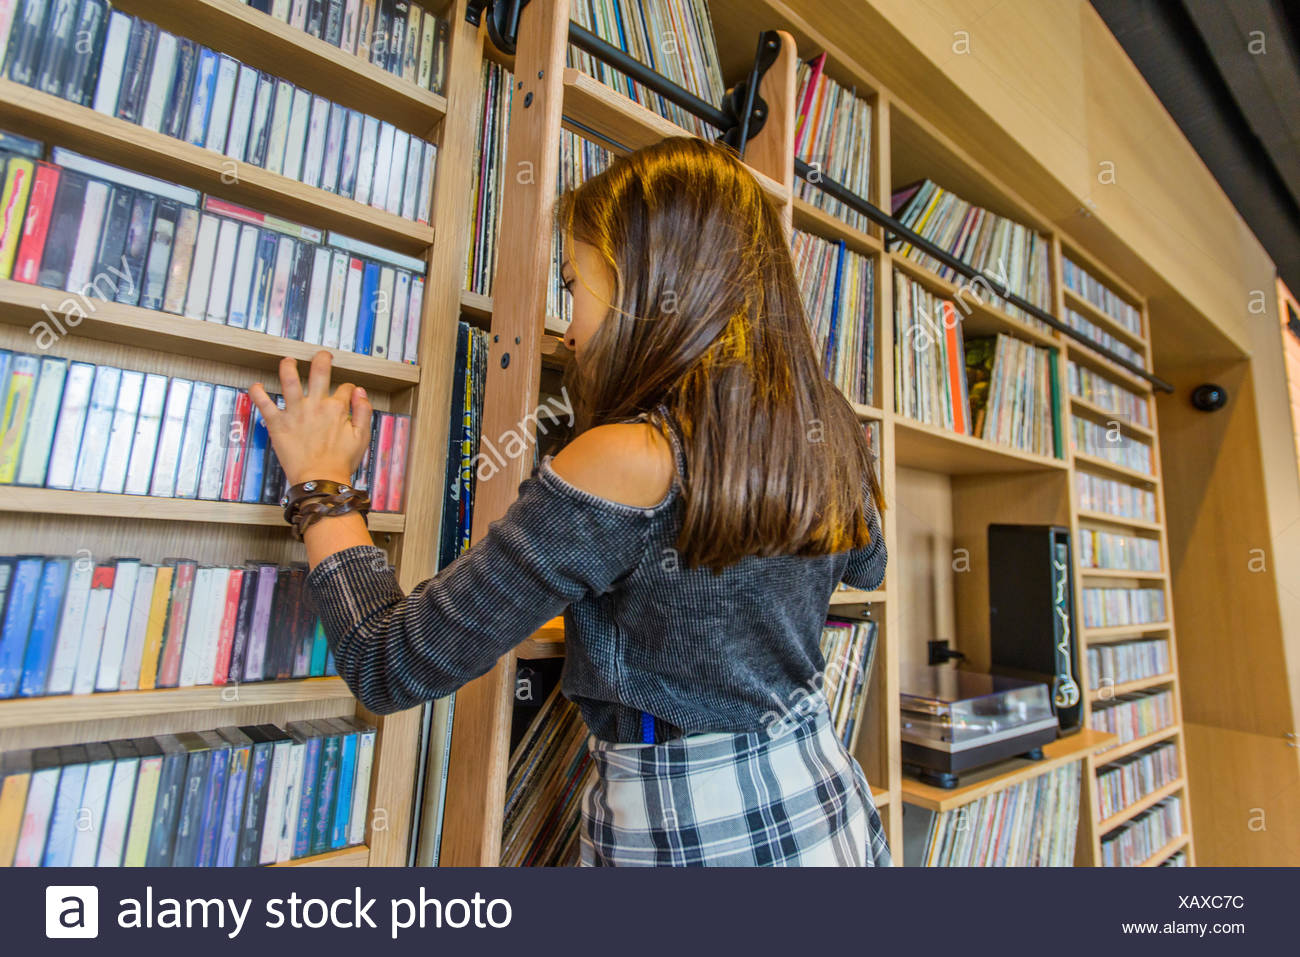 Girl searching cassette tapes on shelf - Stock Image